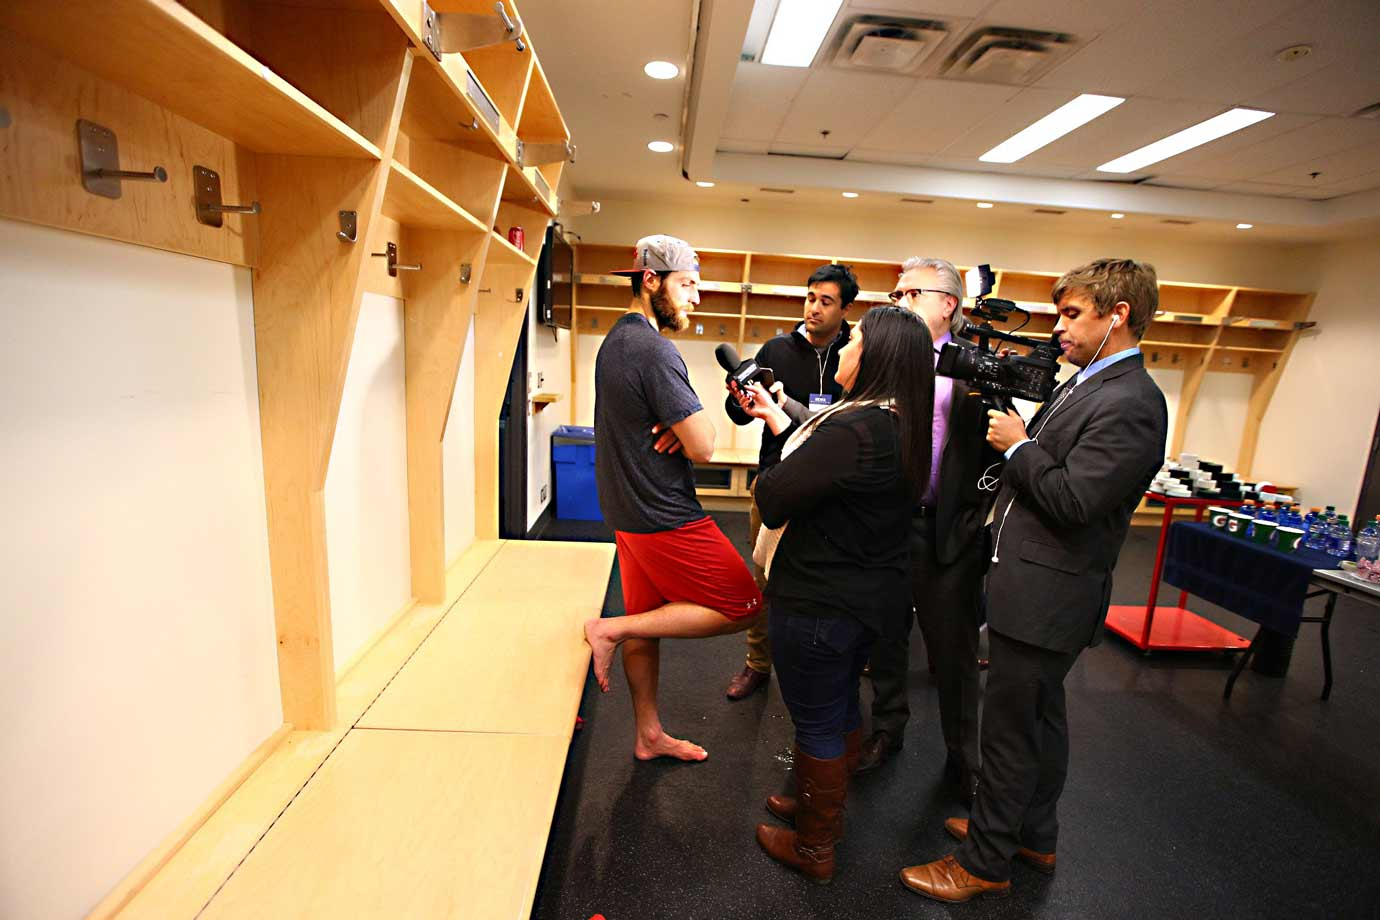 Goalie Braden Holtby conducts one of the final interviews with the media. By 9:58 p.m., the visitors' locker room will be a ghost town as the Capitals head to the airport for their flight back to Washington.